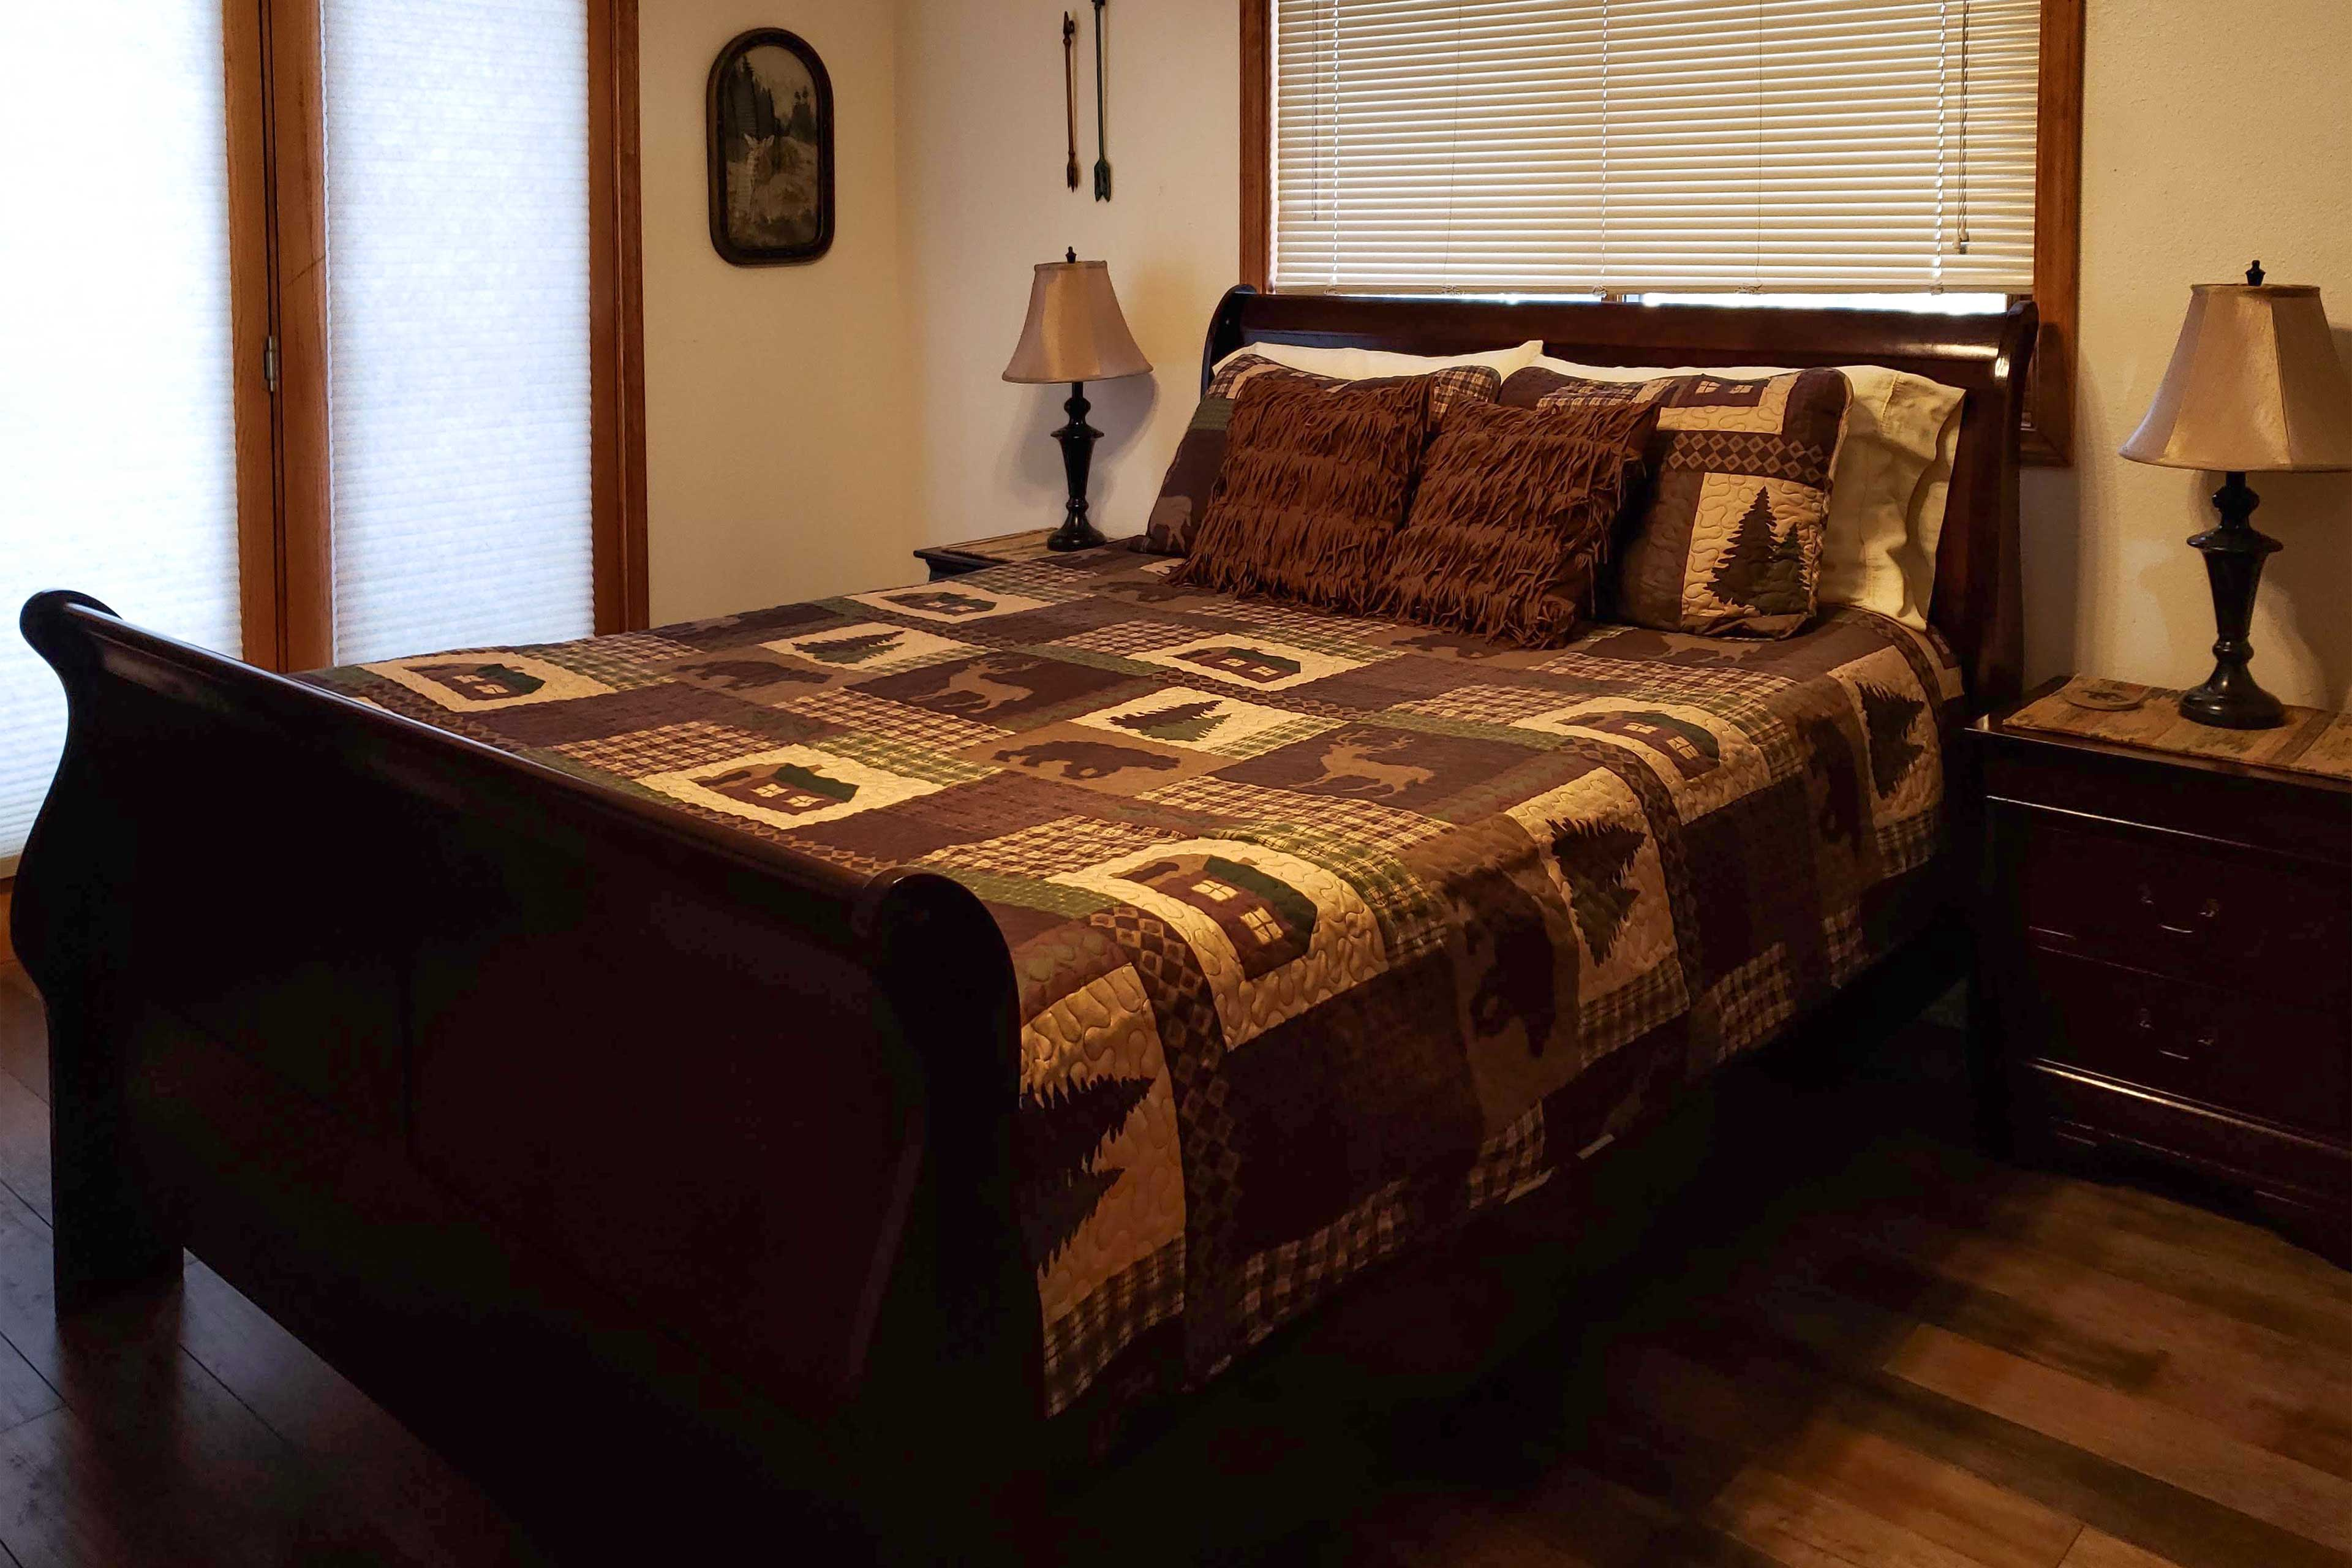 The fourth bedroom houses a queen-sized bed.